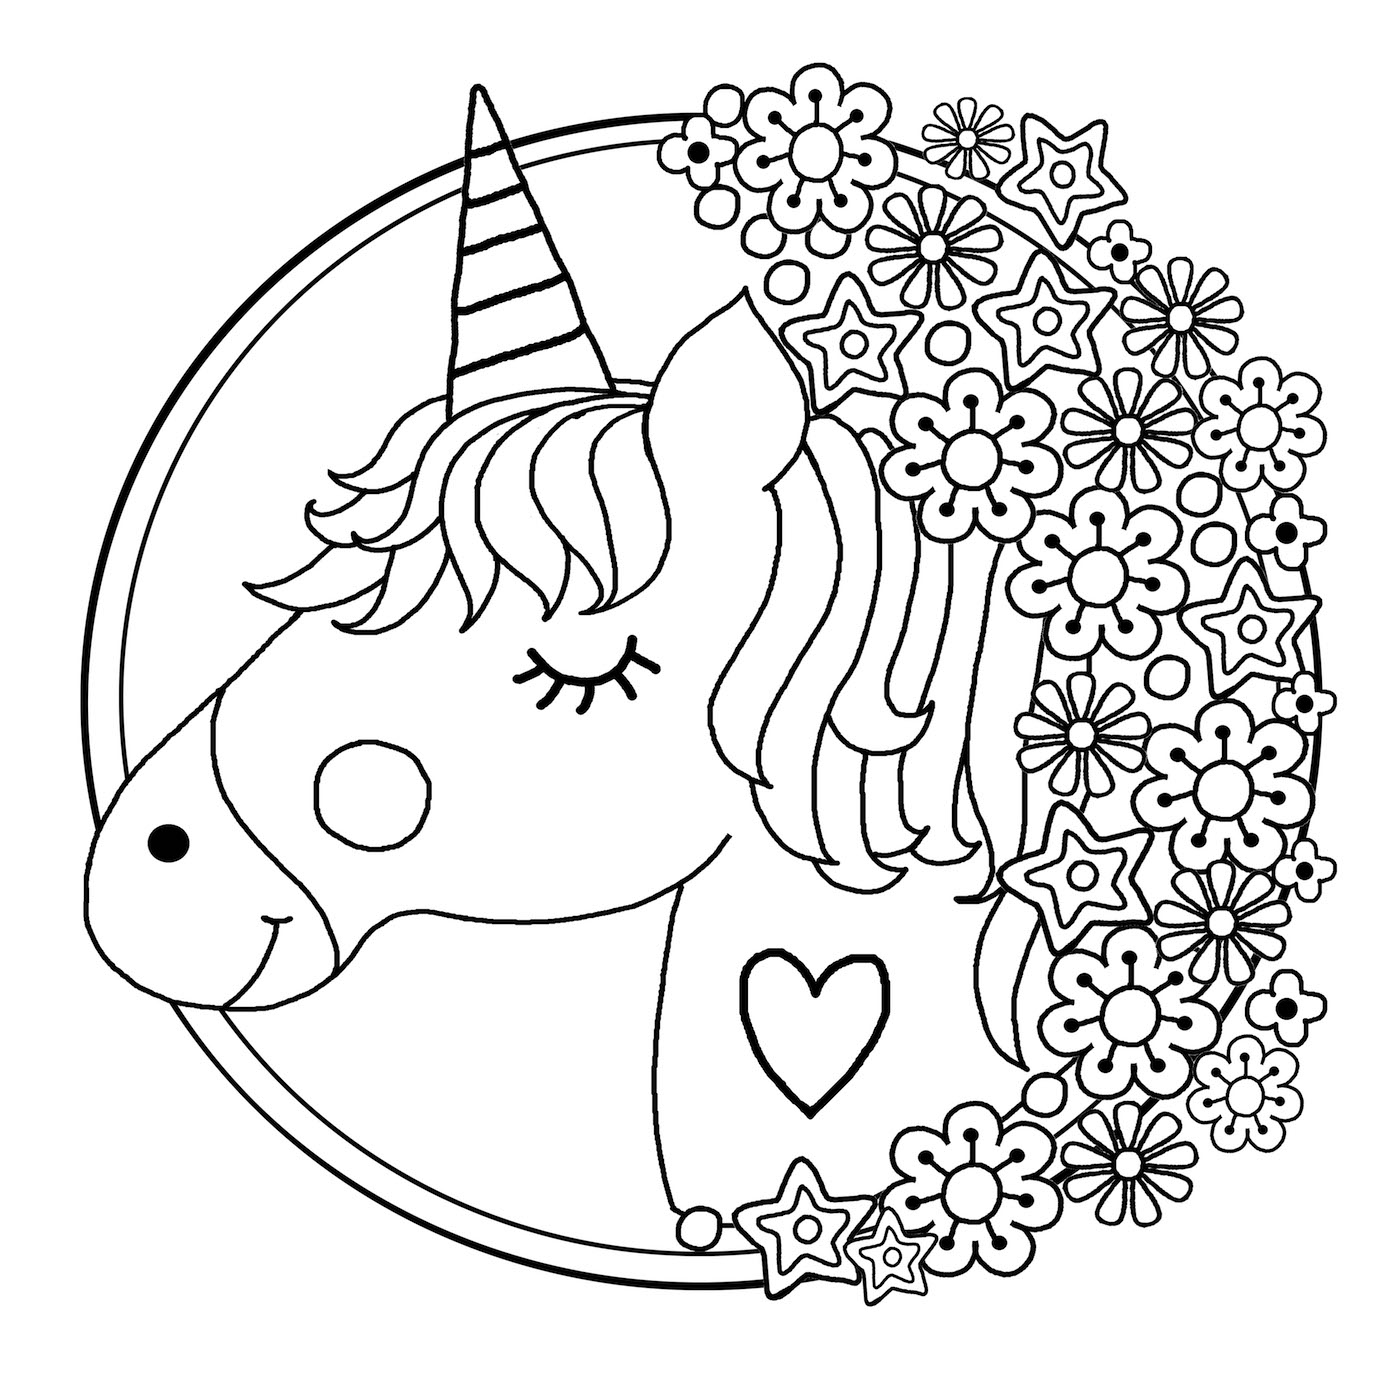 Downloadable unicorn colouring